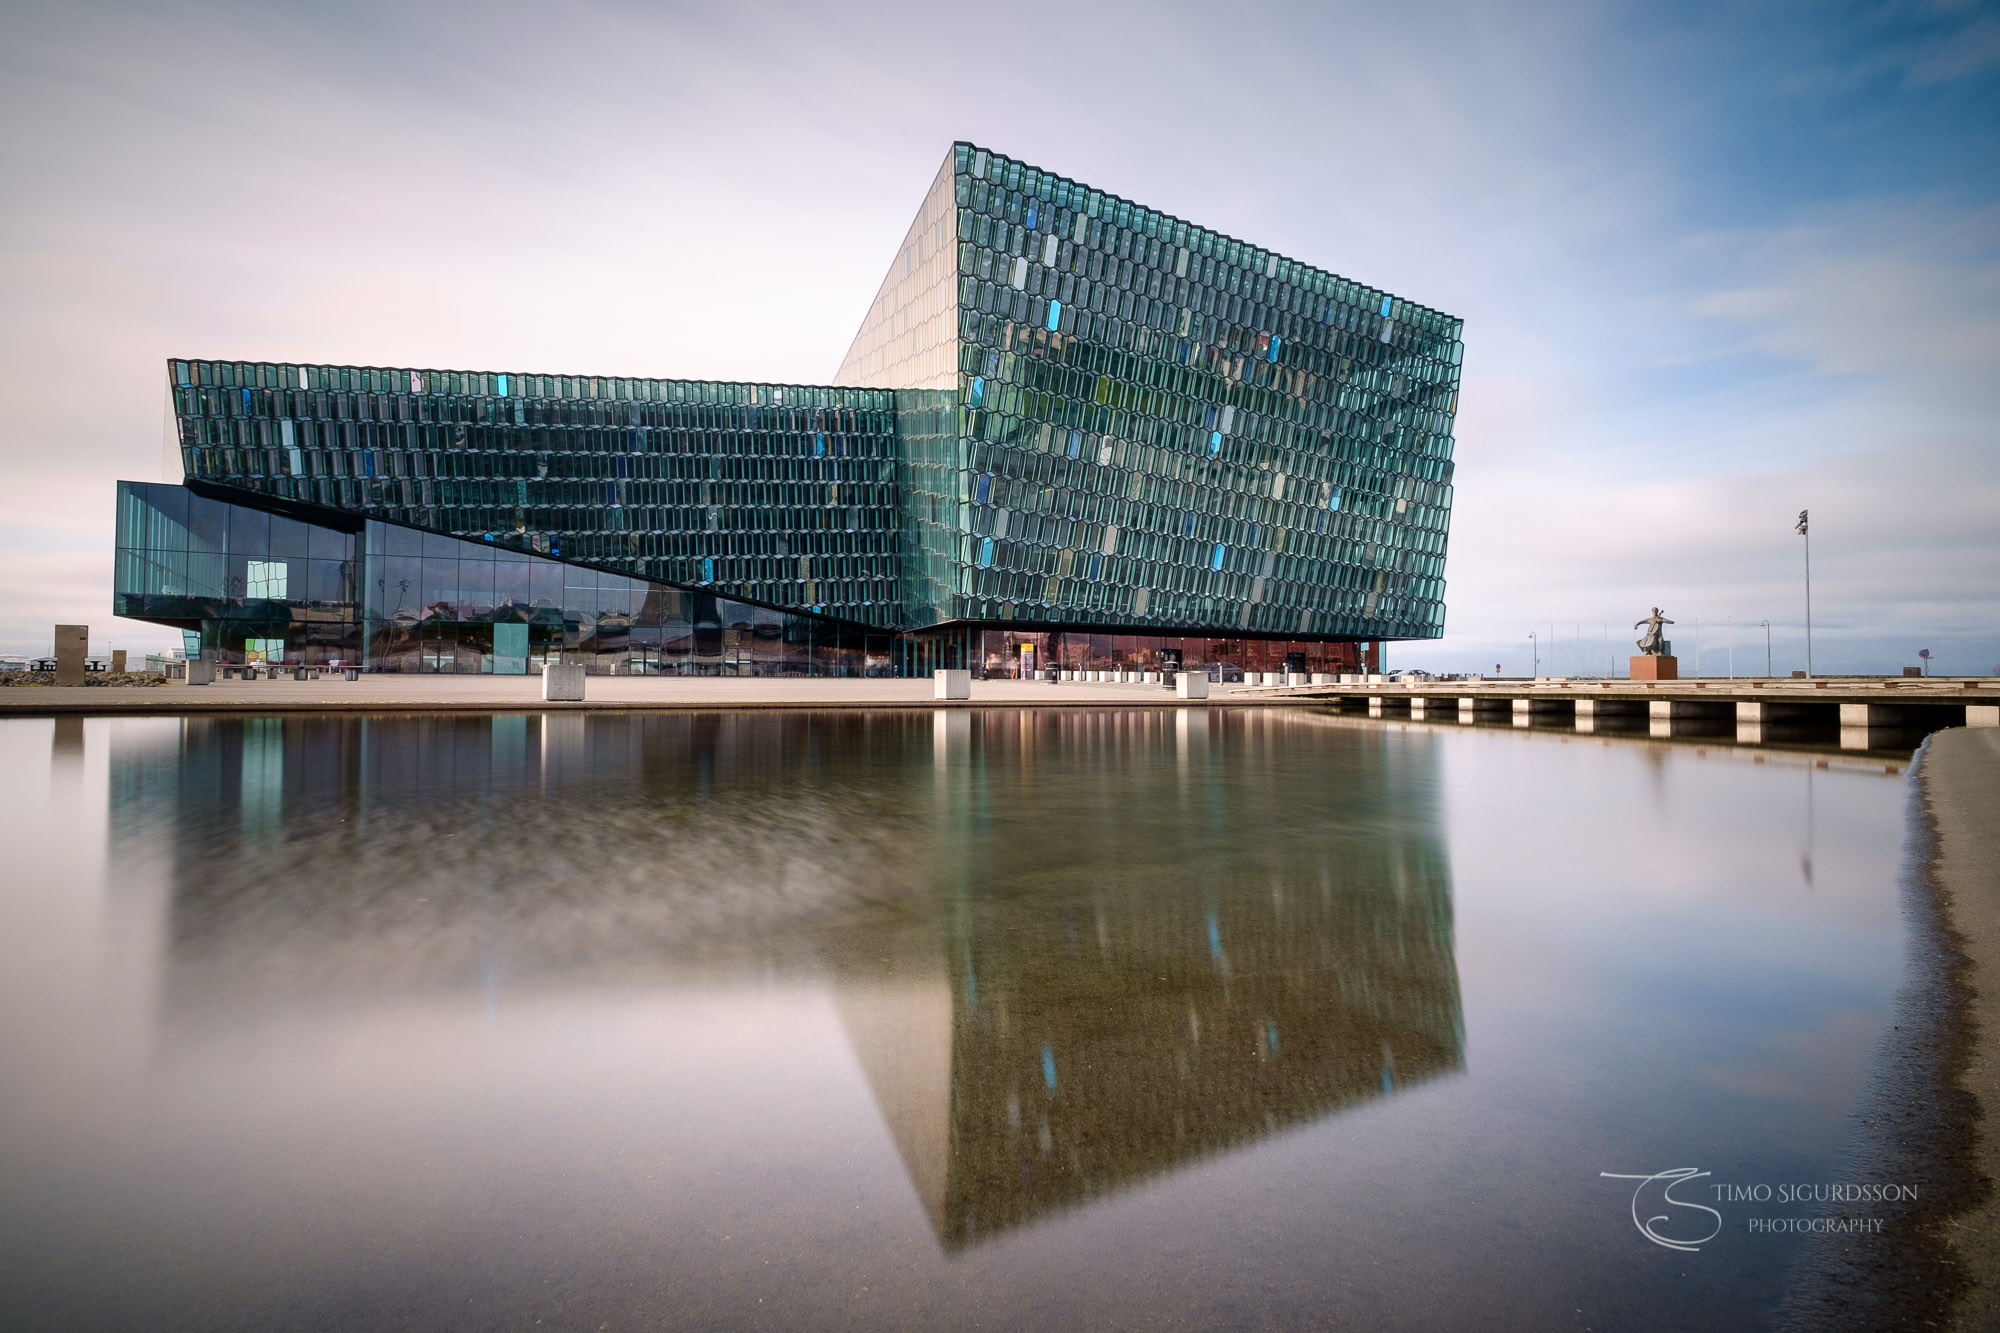 Harpa Concert Hall, Reykjavik, Icaland. Reflection in pond.